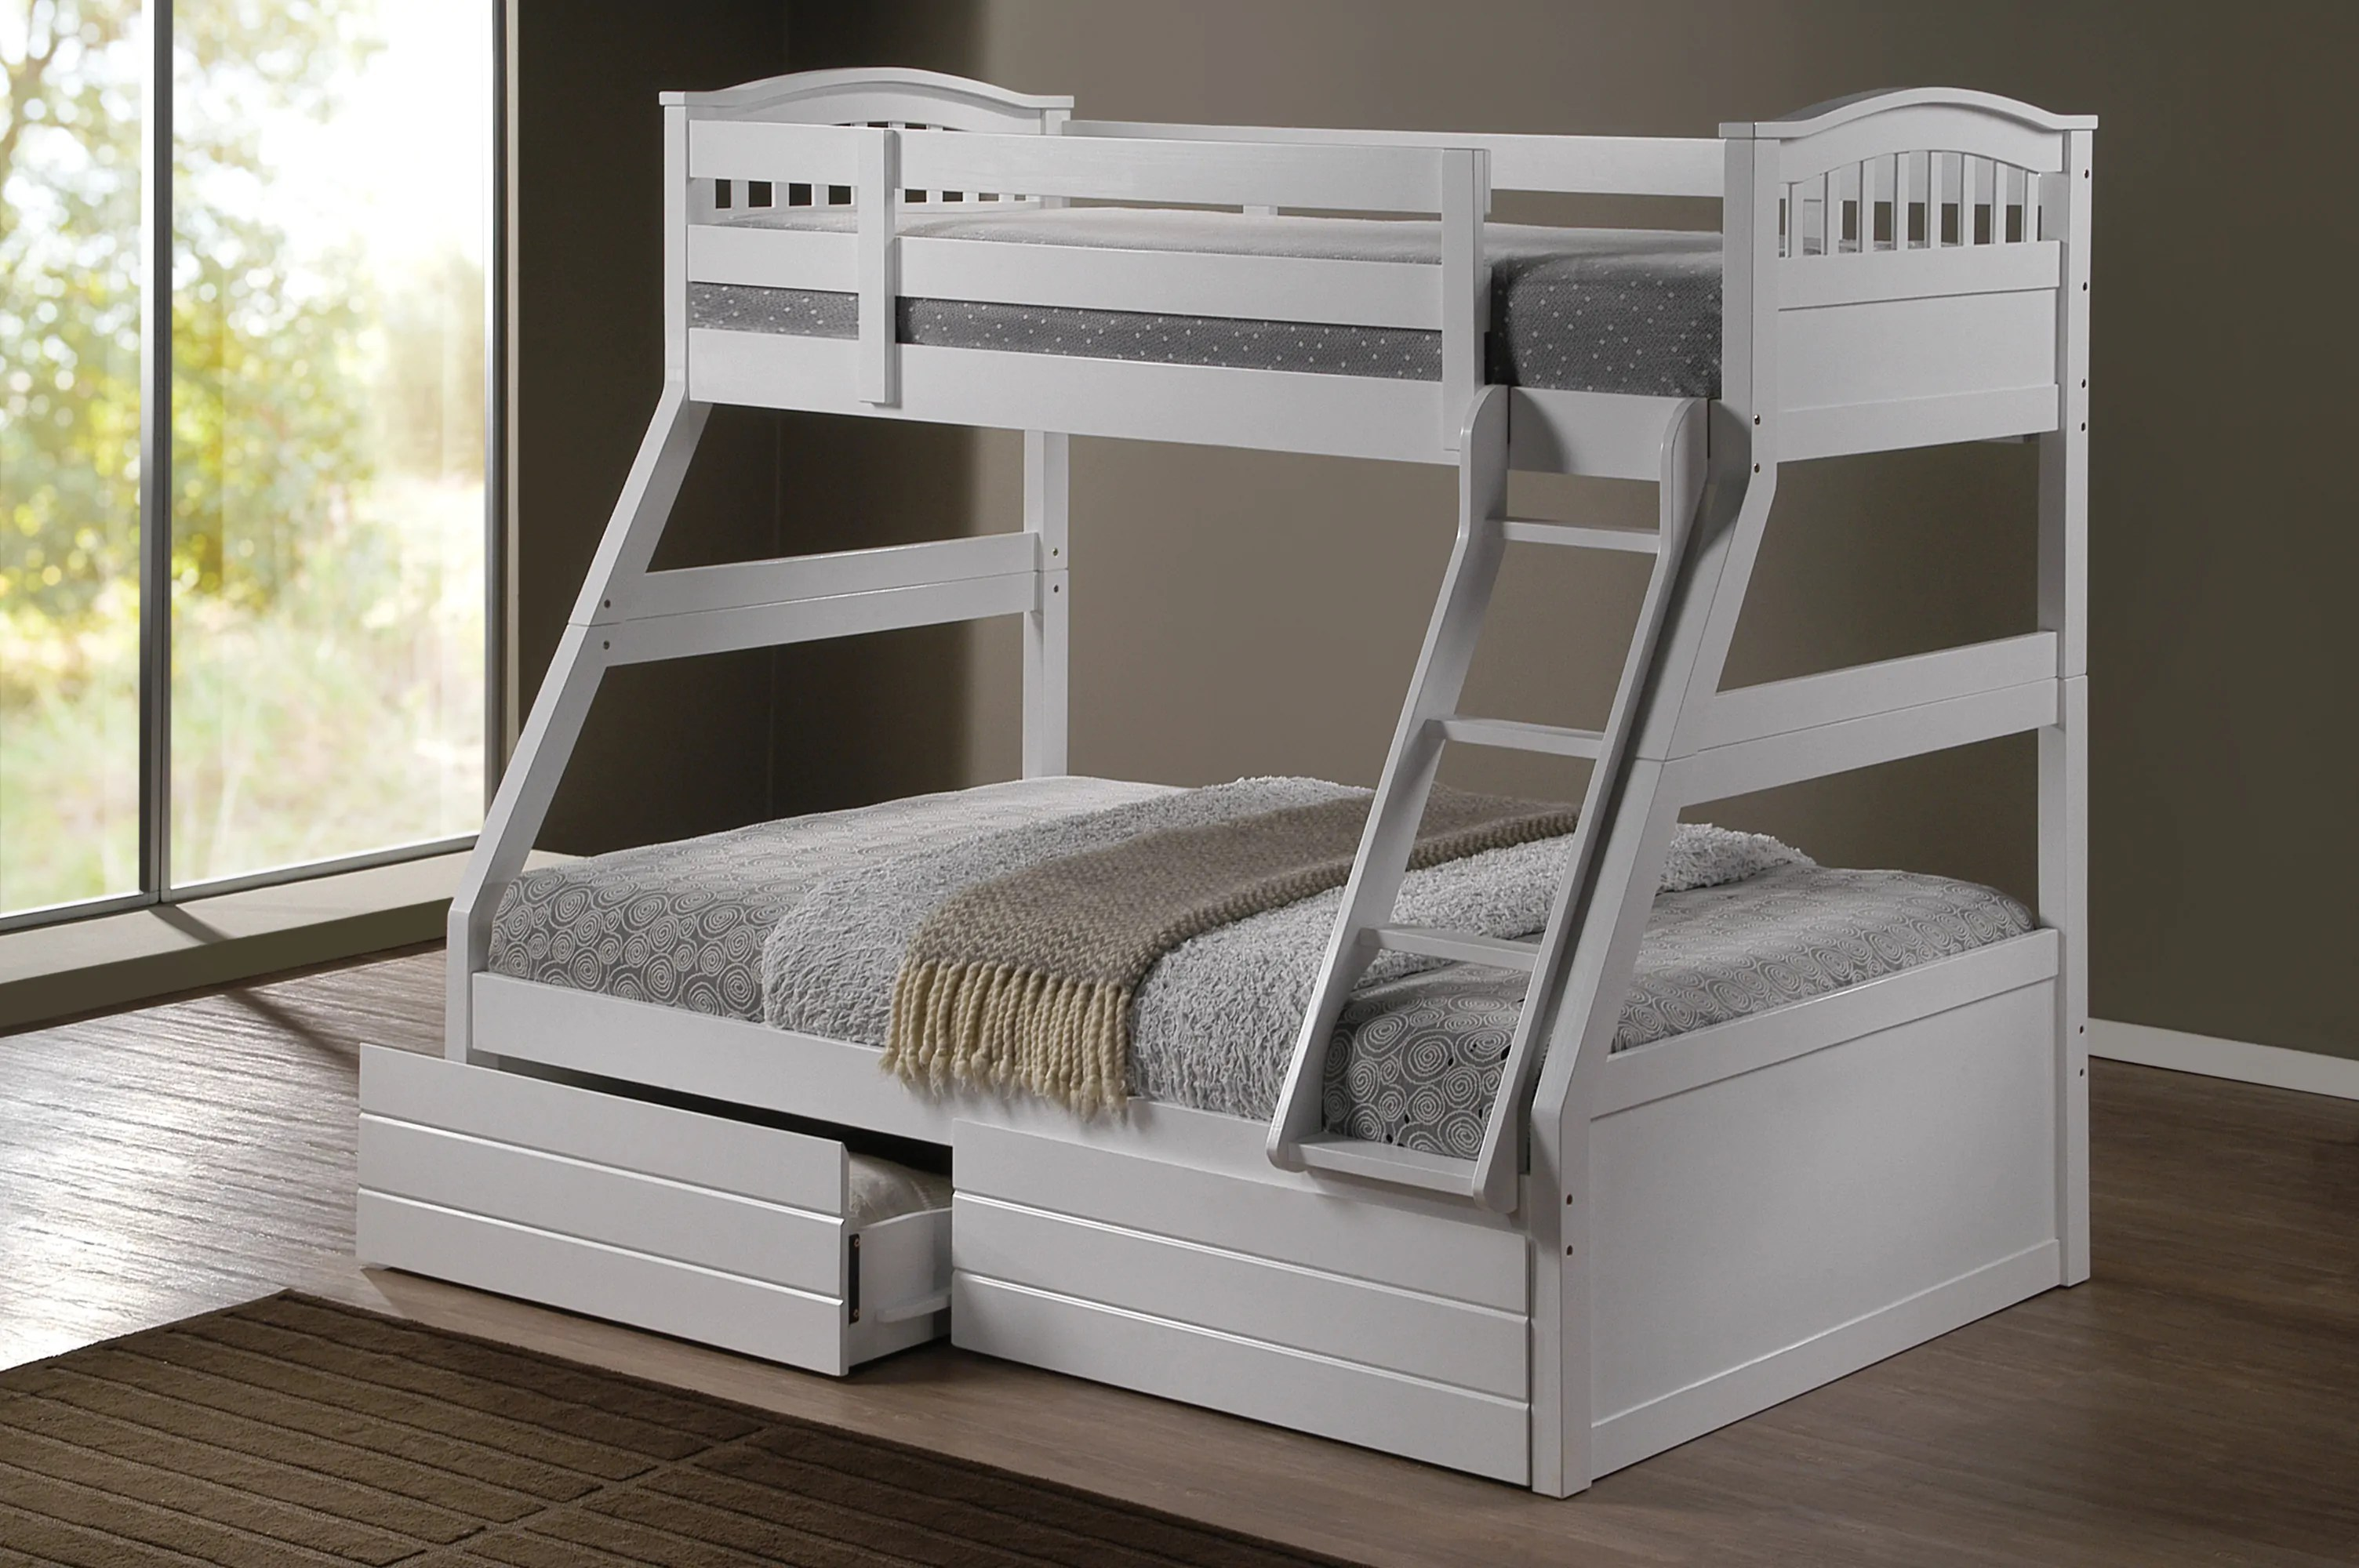 Double Bunk Beds Ashley White Duo Double Single Bunk Beds With Drawers